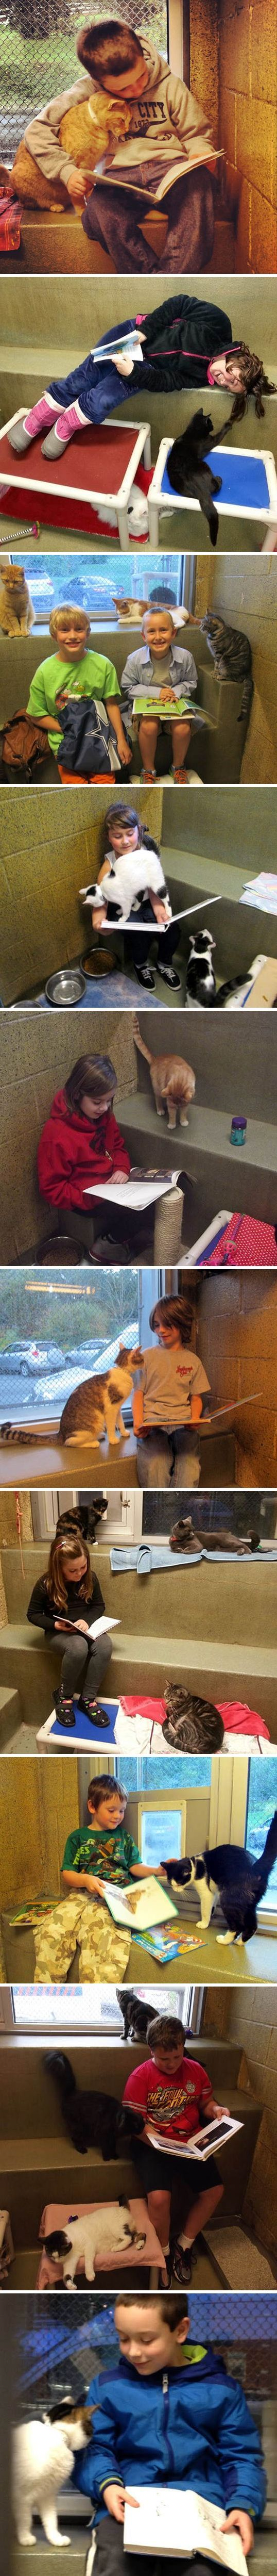 Every shelter should have a similar program: Children Read To Shelter Cats To Soothe Them - At Animal Rescue League of Berks County, children can read to shelter cats to soothe them. The cats adore them and are always delighted to have these little humans there to keep them company.